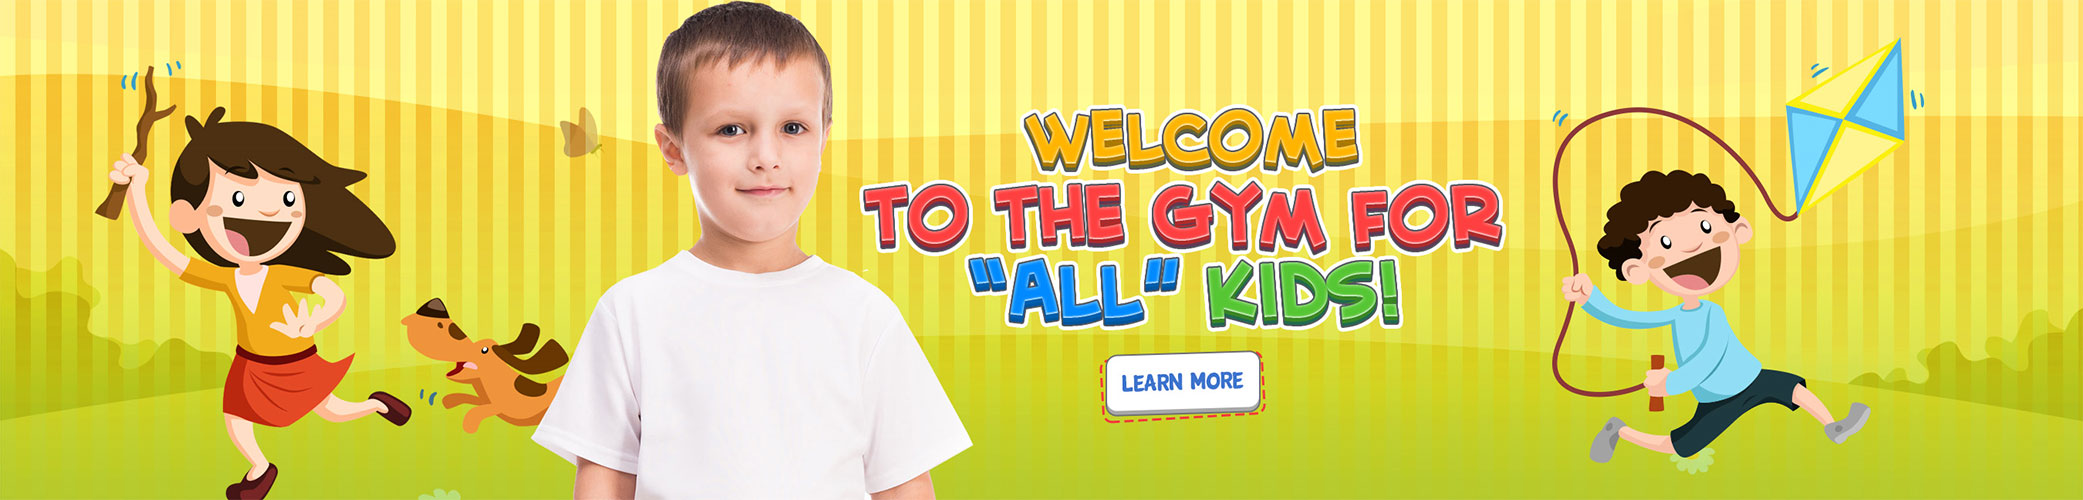 Kids Gym Indoor Playground